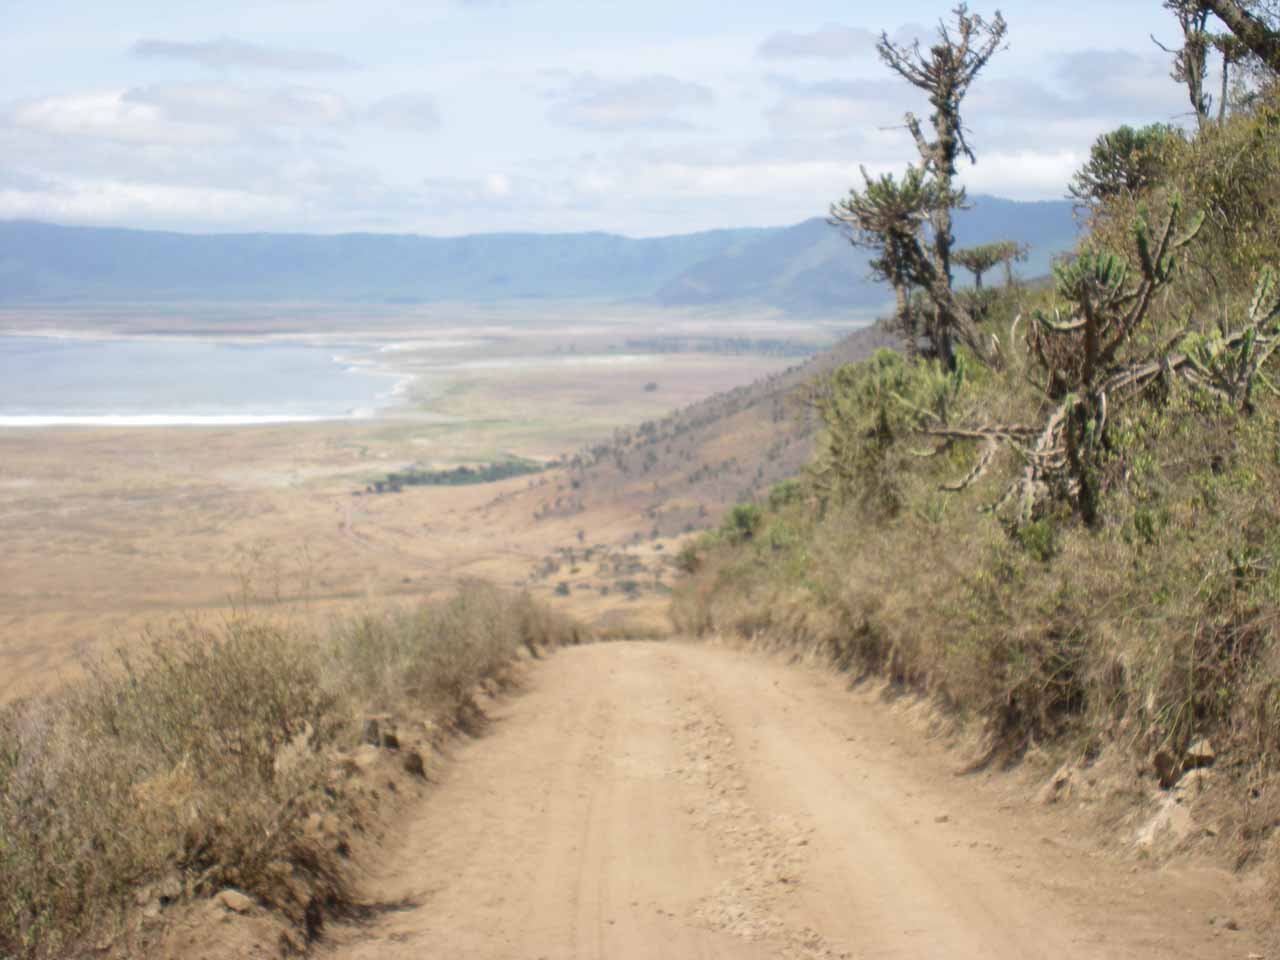 Entering the Ngorongoro Crater via Descent Road